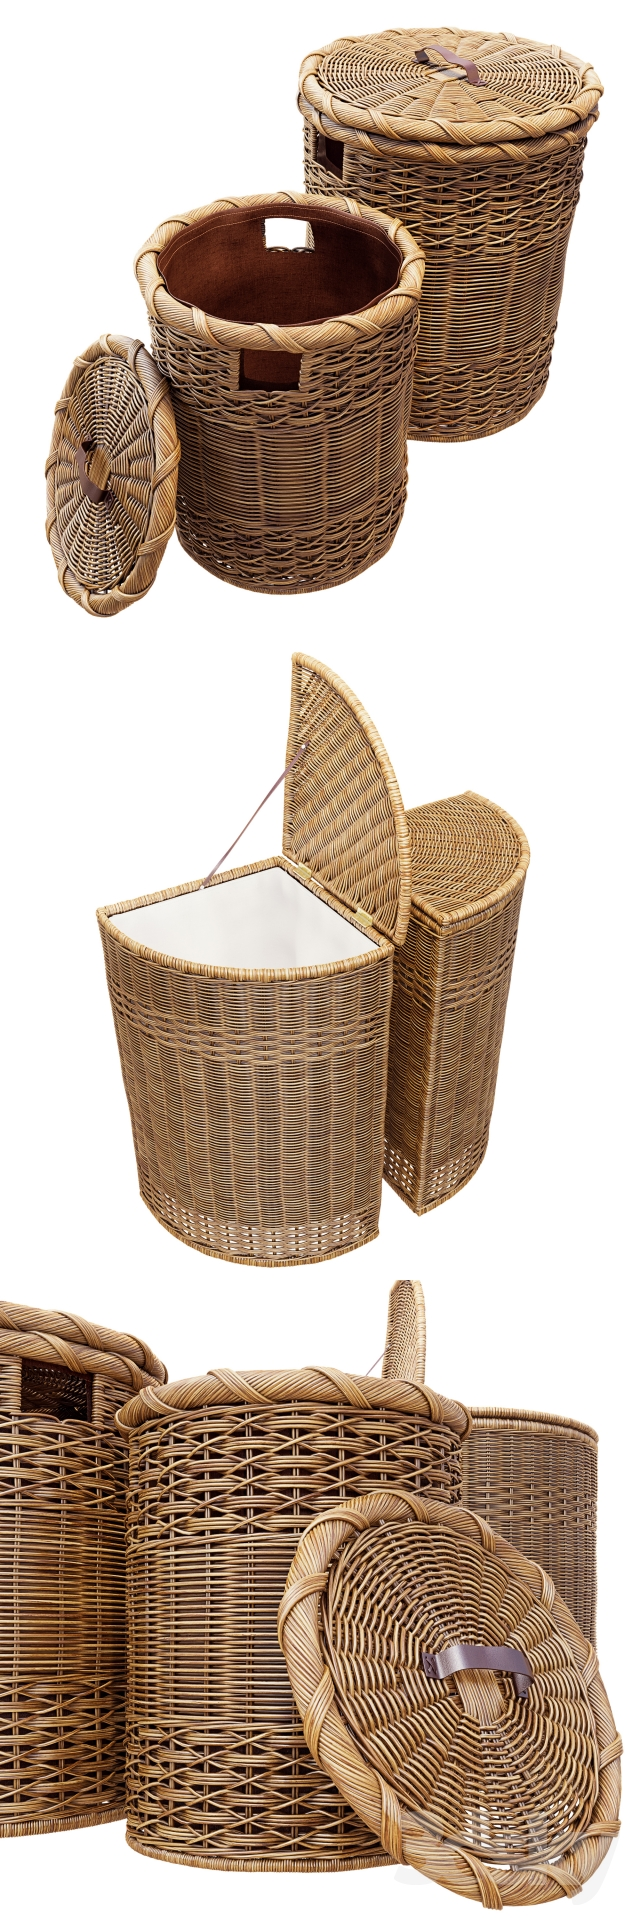 3d Models Bathroom Accessories Wicker Basket For Clothes